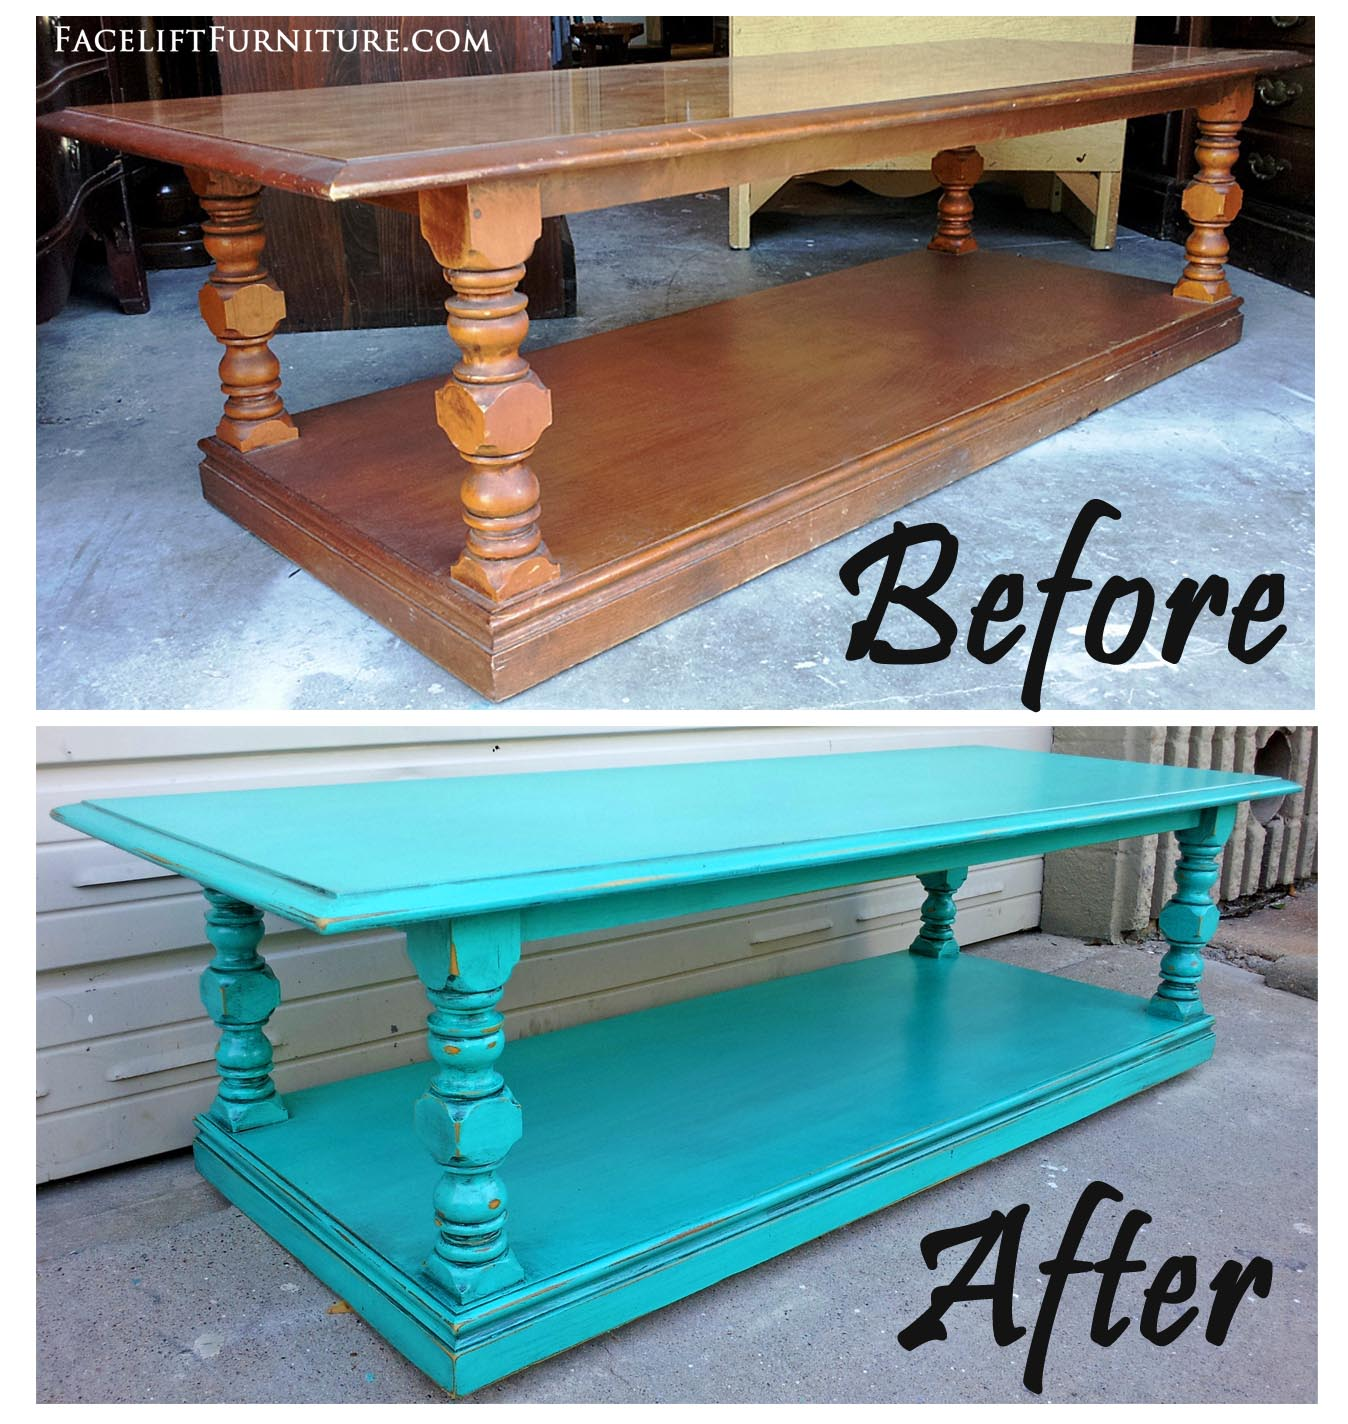 This Chunky Vintage Coffee Table Was Given An Updated Look With Paint,  Glaze And Distressing.